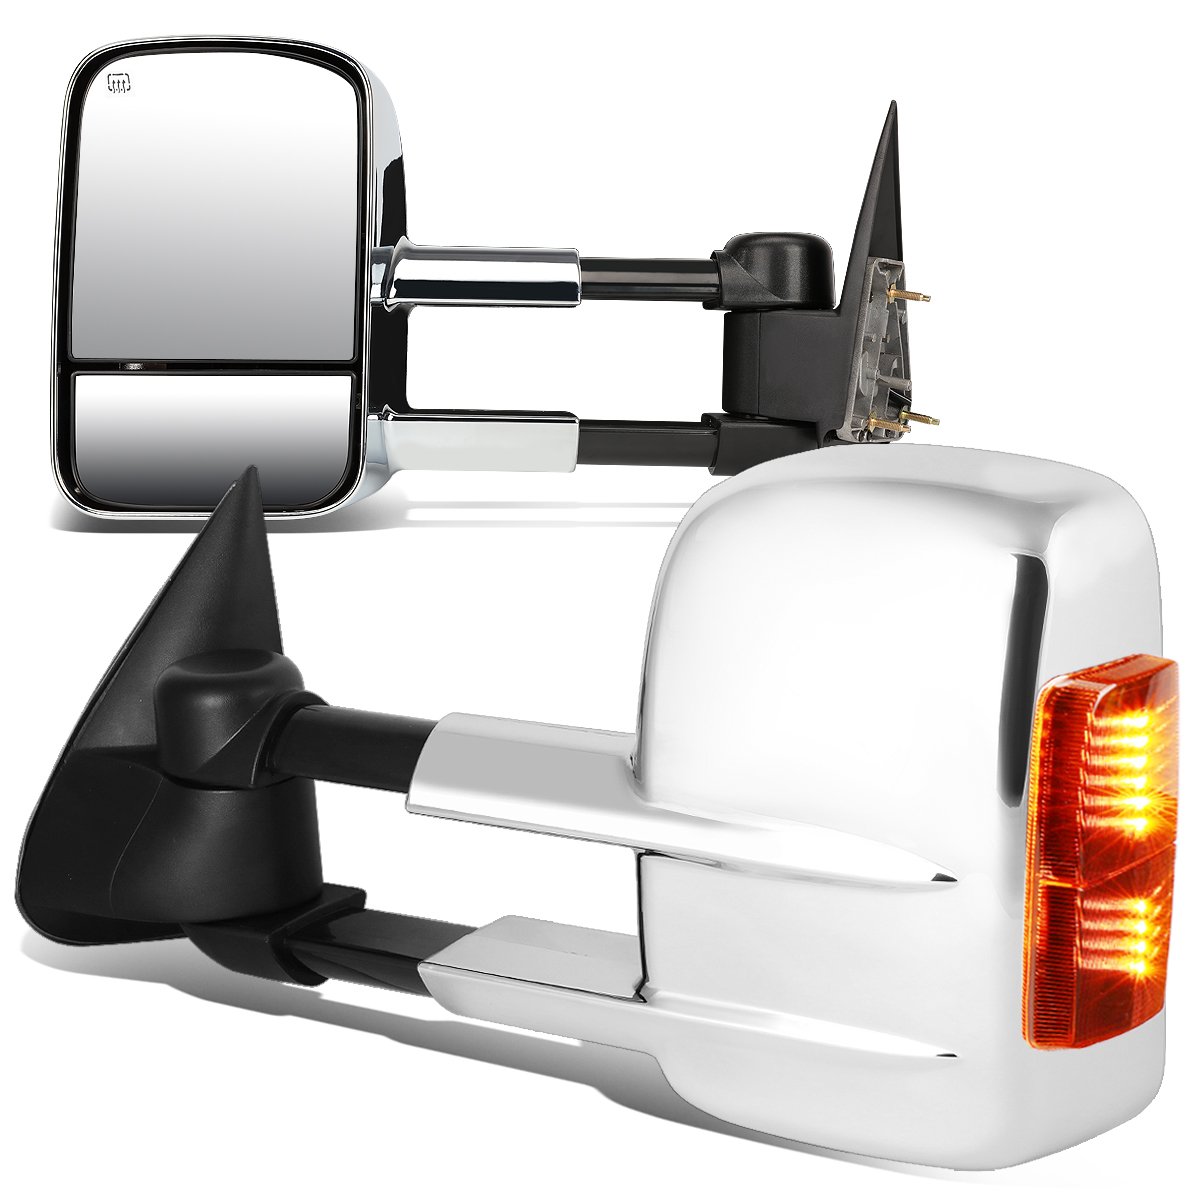 For 00-02 Yukon / Tahoe Pair of Powered + Heated Signal Glass + Manual Extenable Chrome Side Towing Mirrors 01